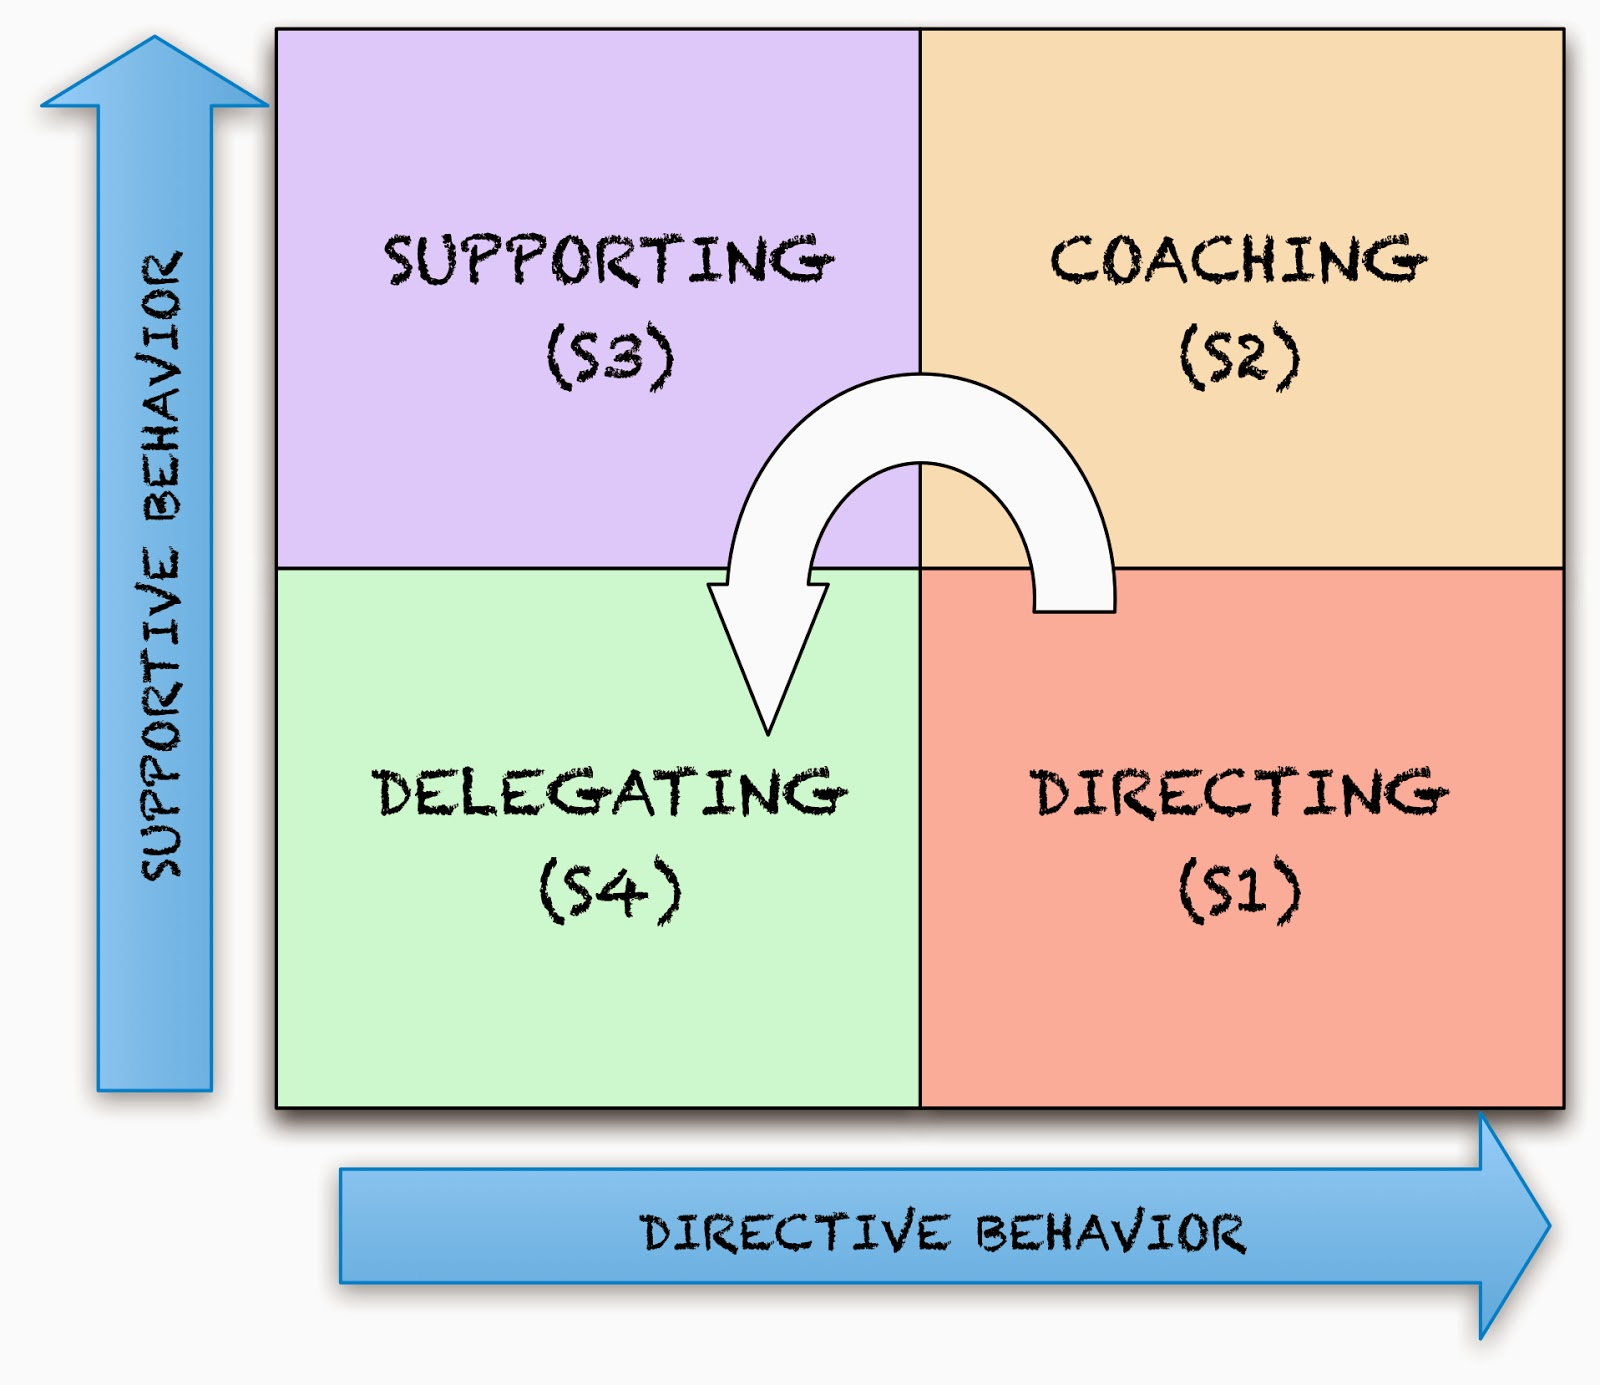 agile game development: an introduction to situational leadership